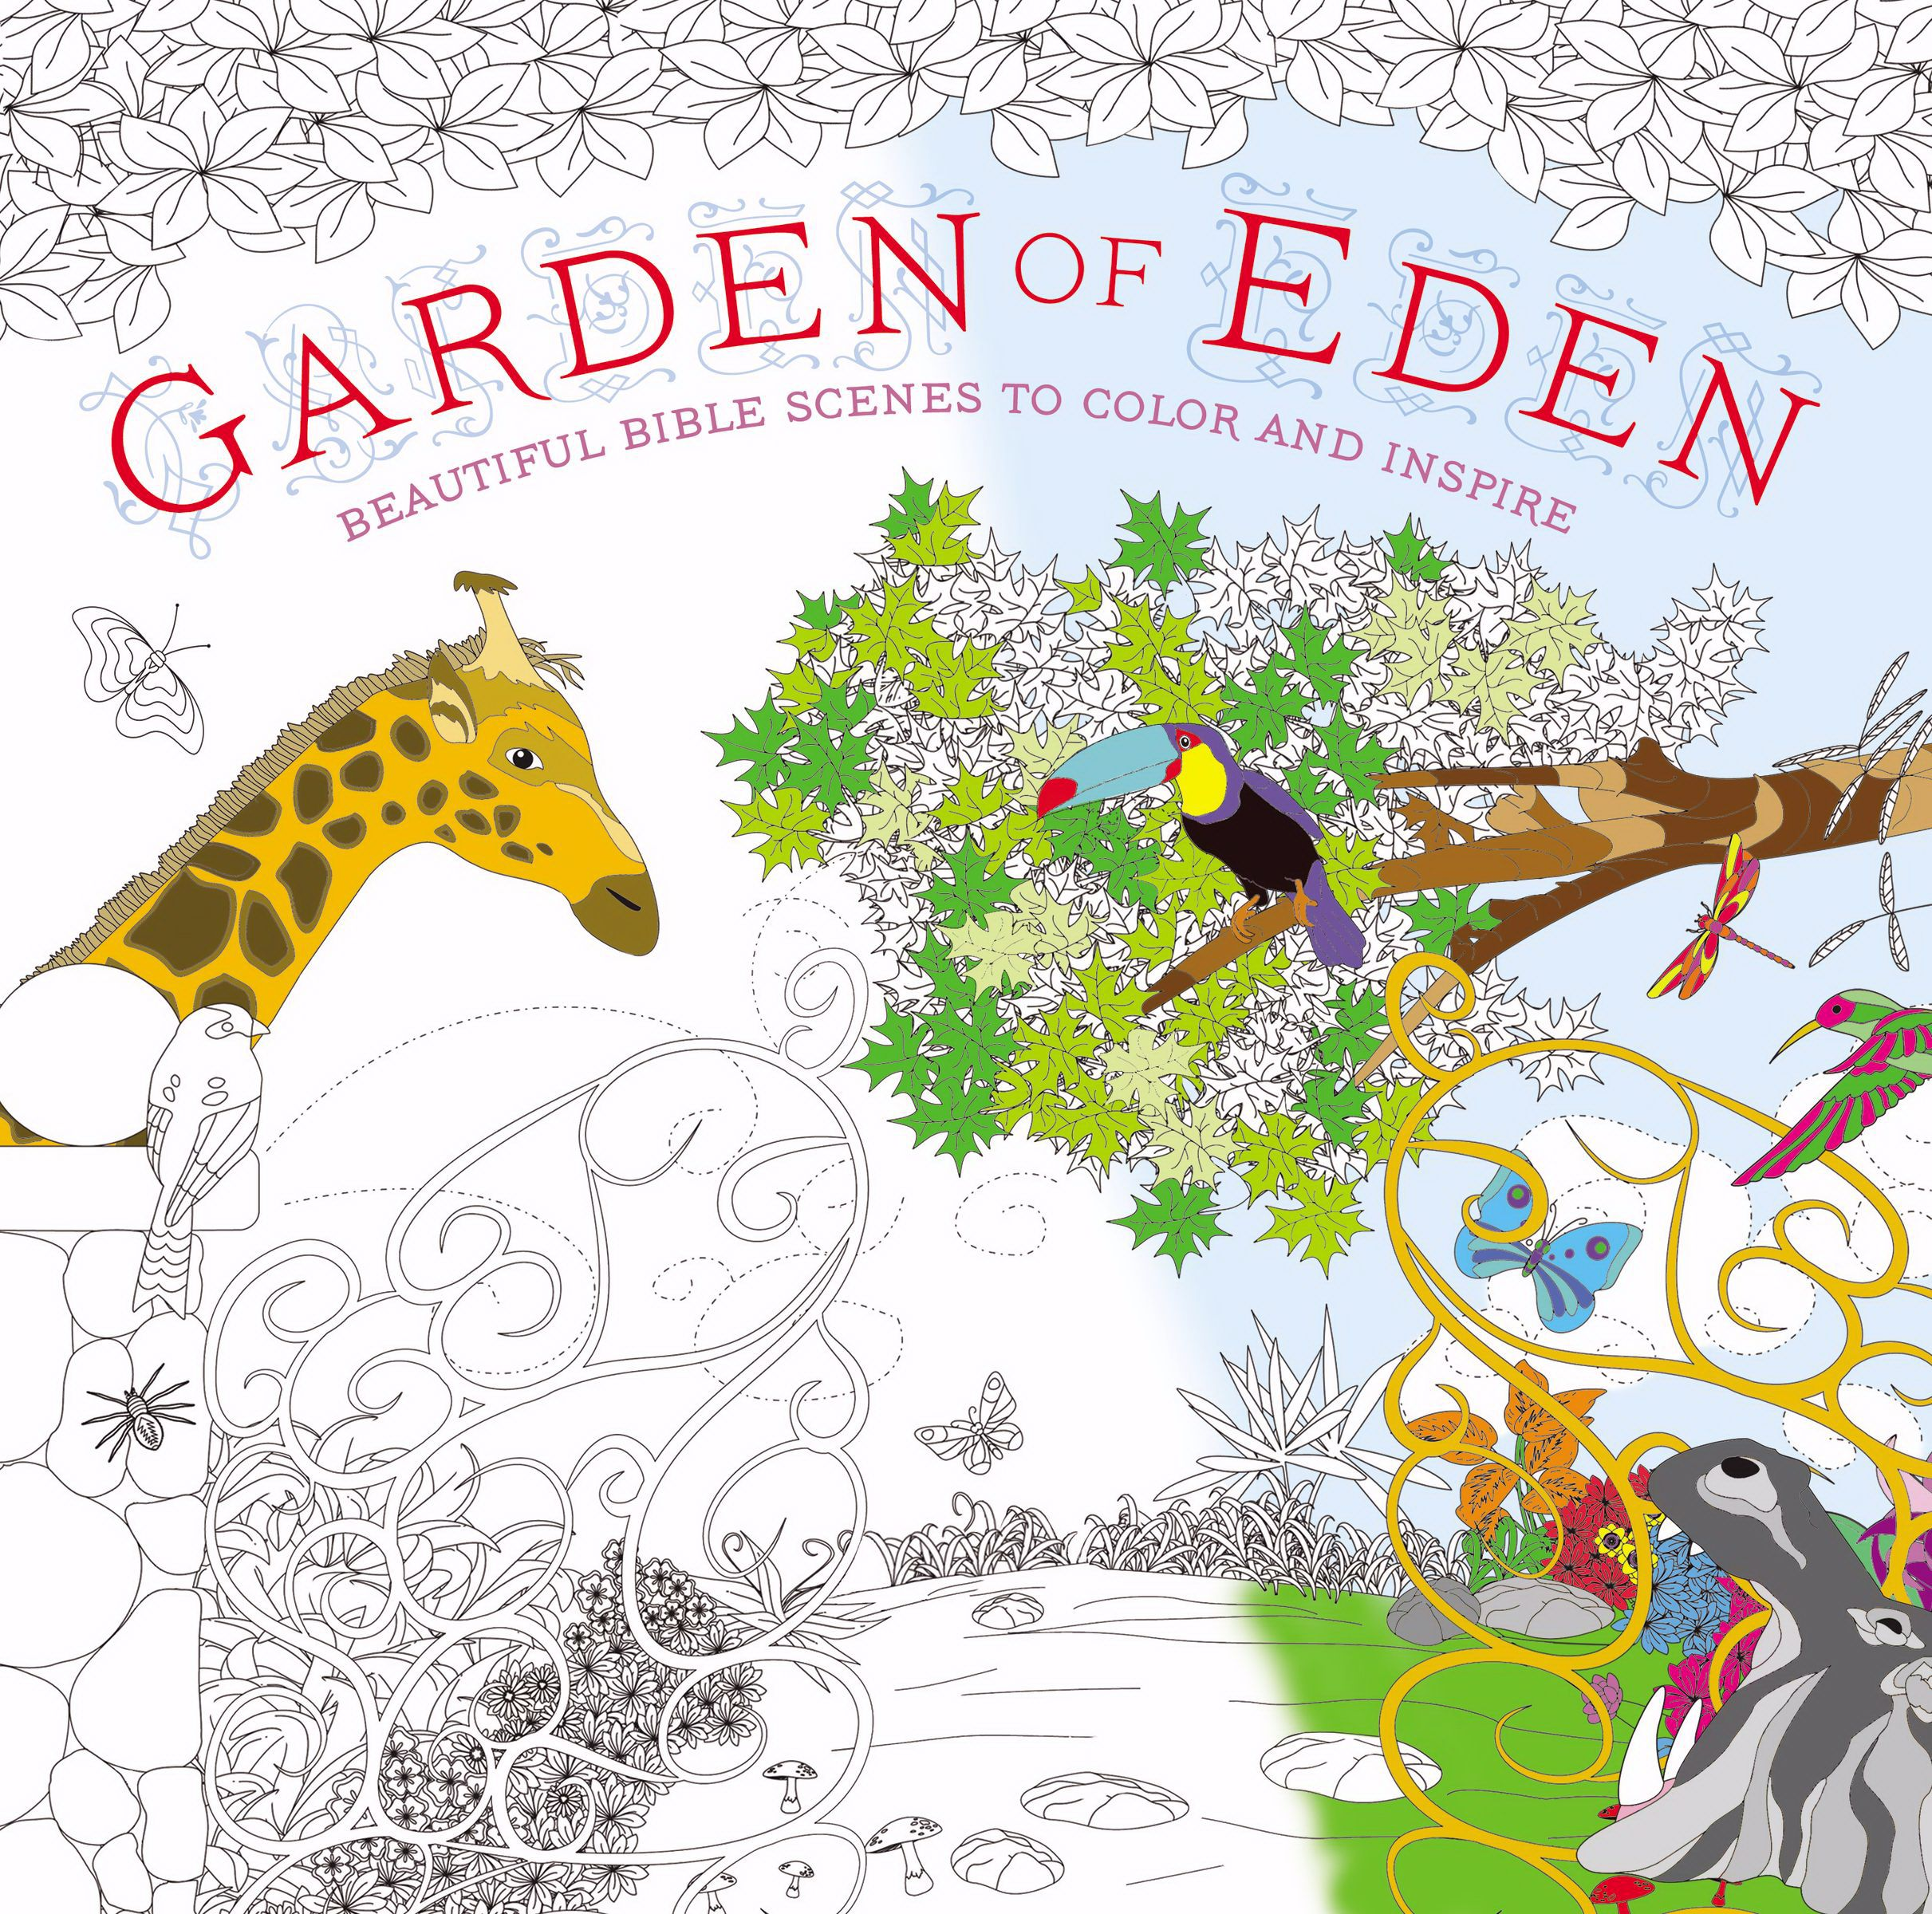 Garden Of Eden Adult Coloring Book